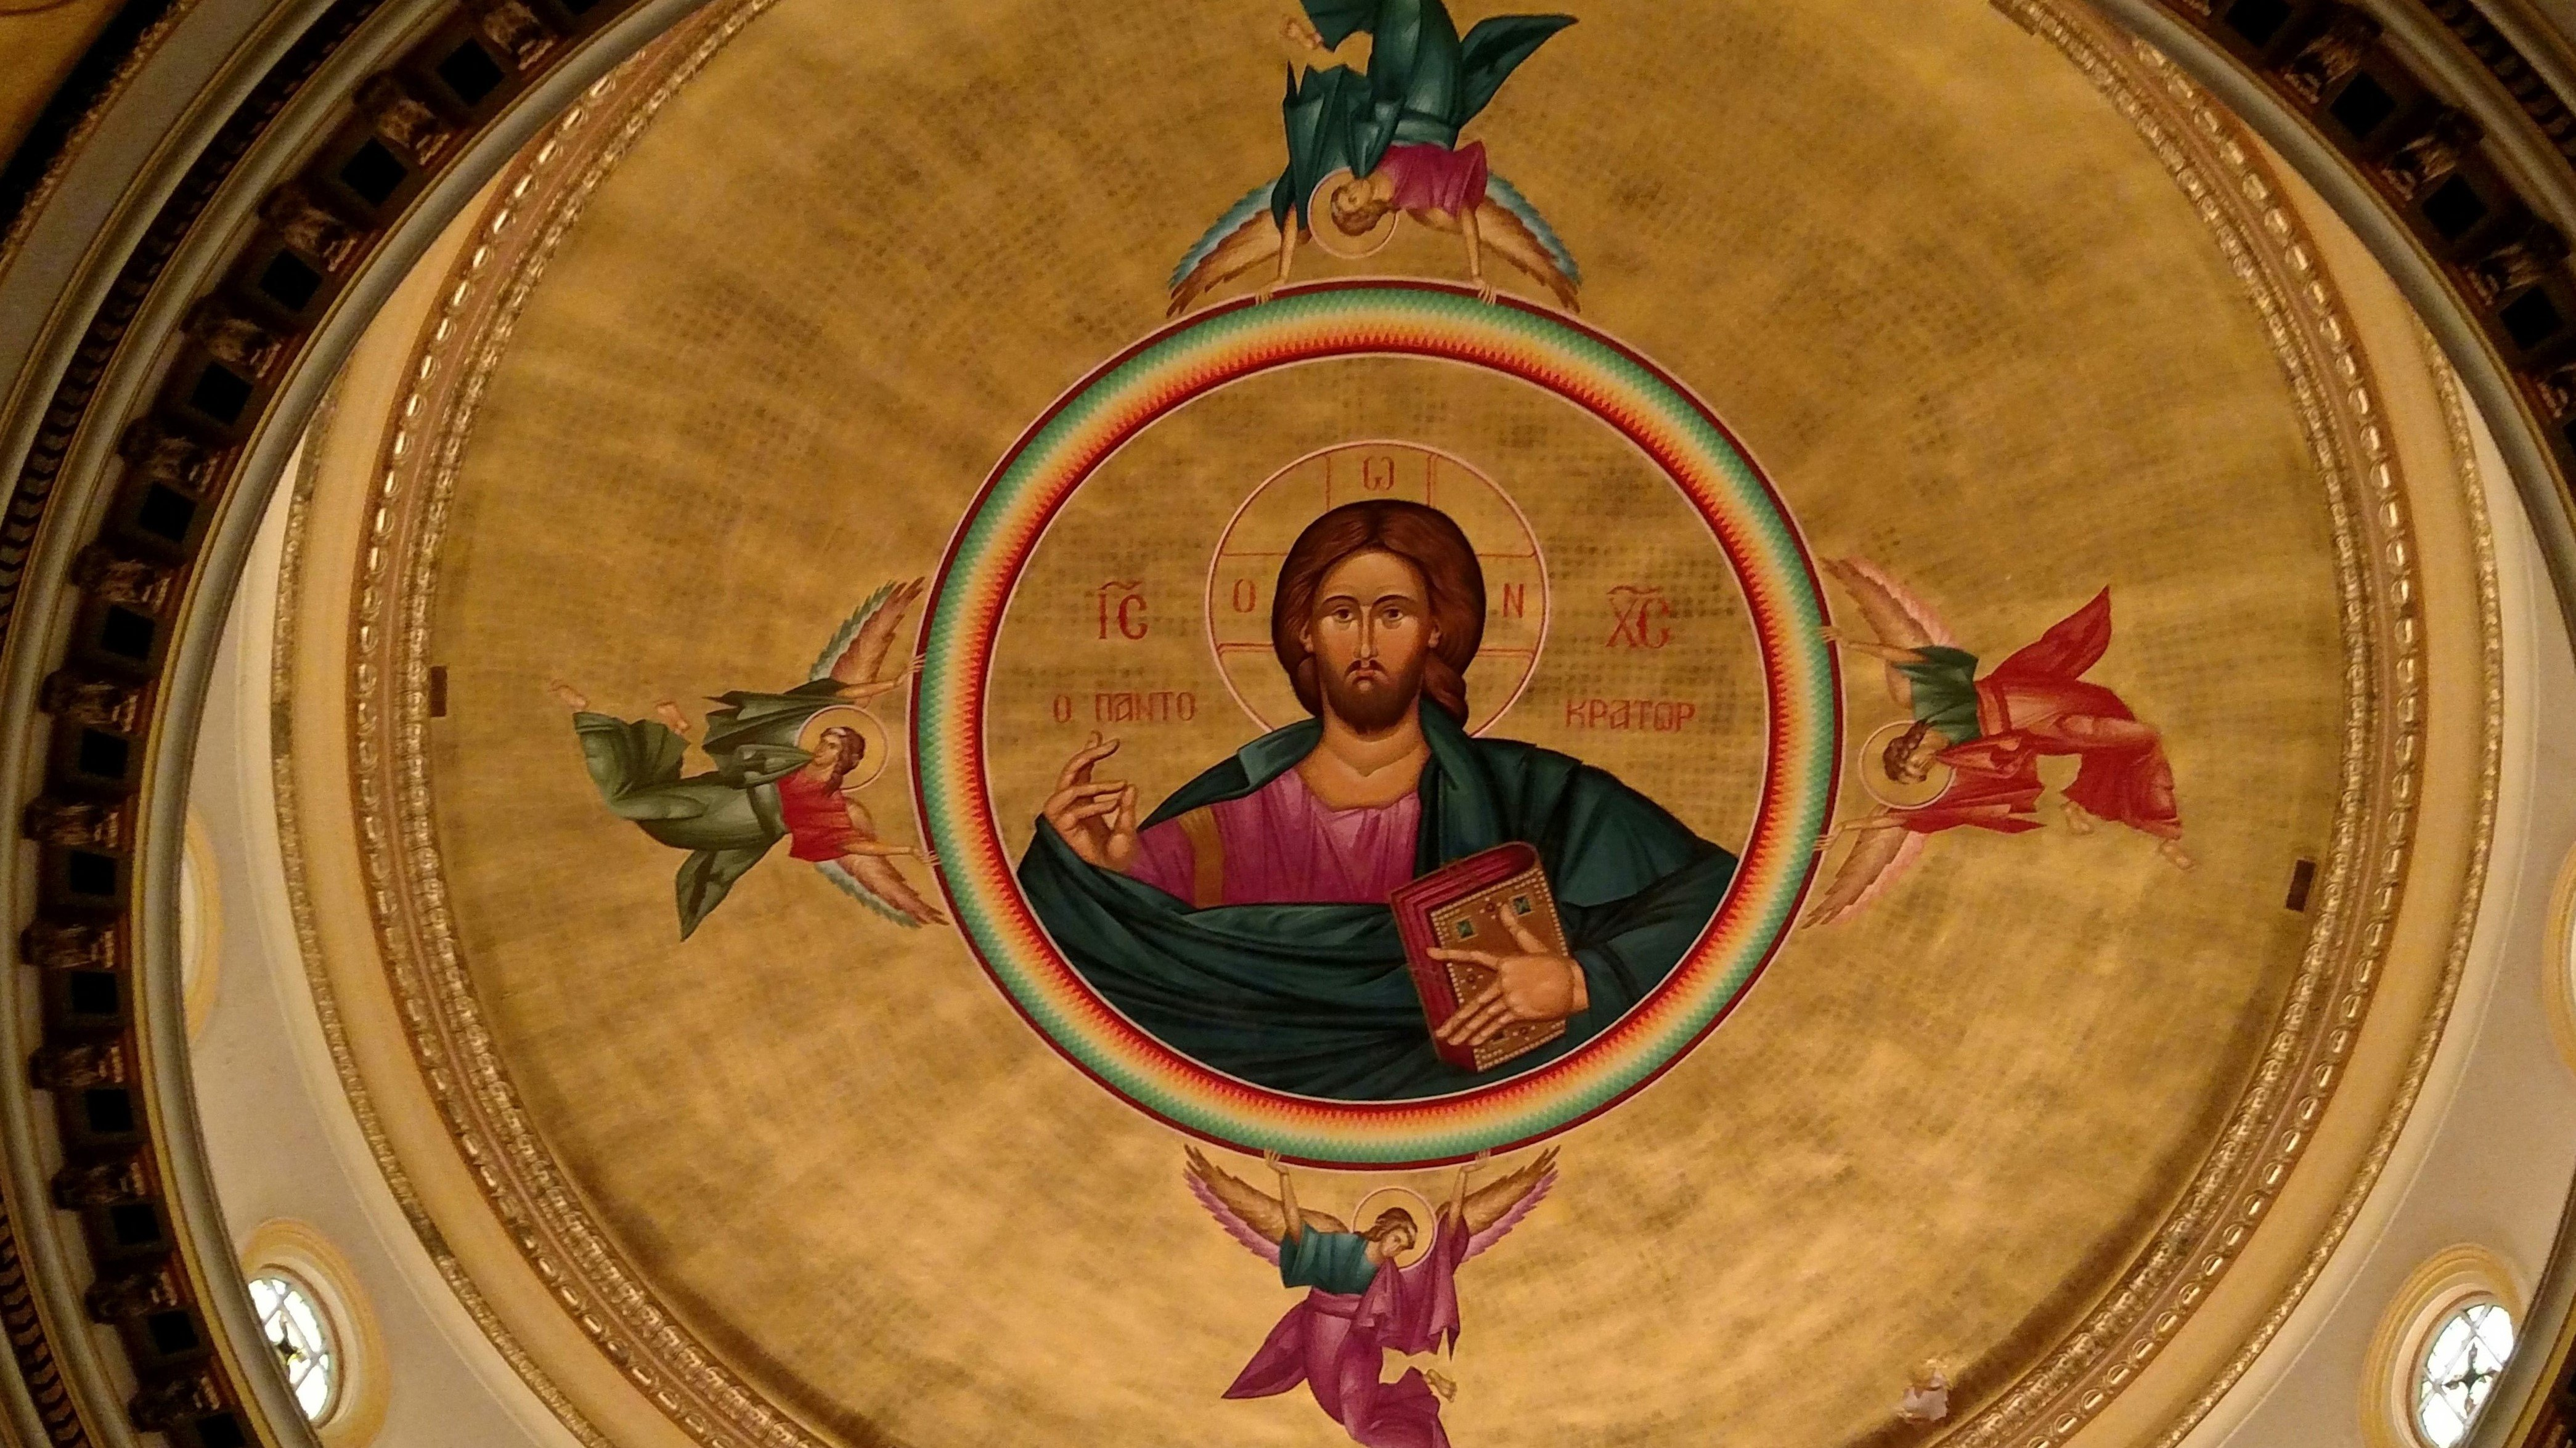 An interior view of the dome, depicting Christ, along with the archangels Gabriel, Michael, Raphael, and Uriel.